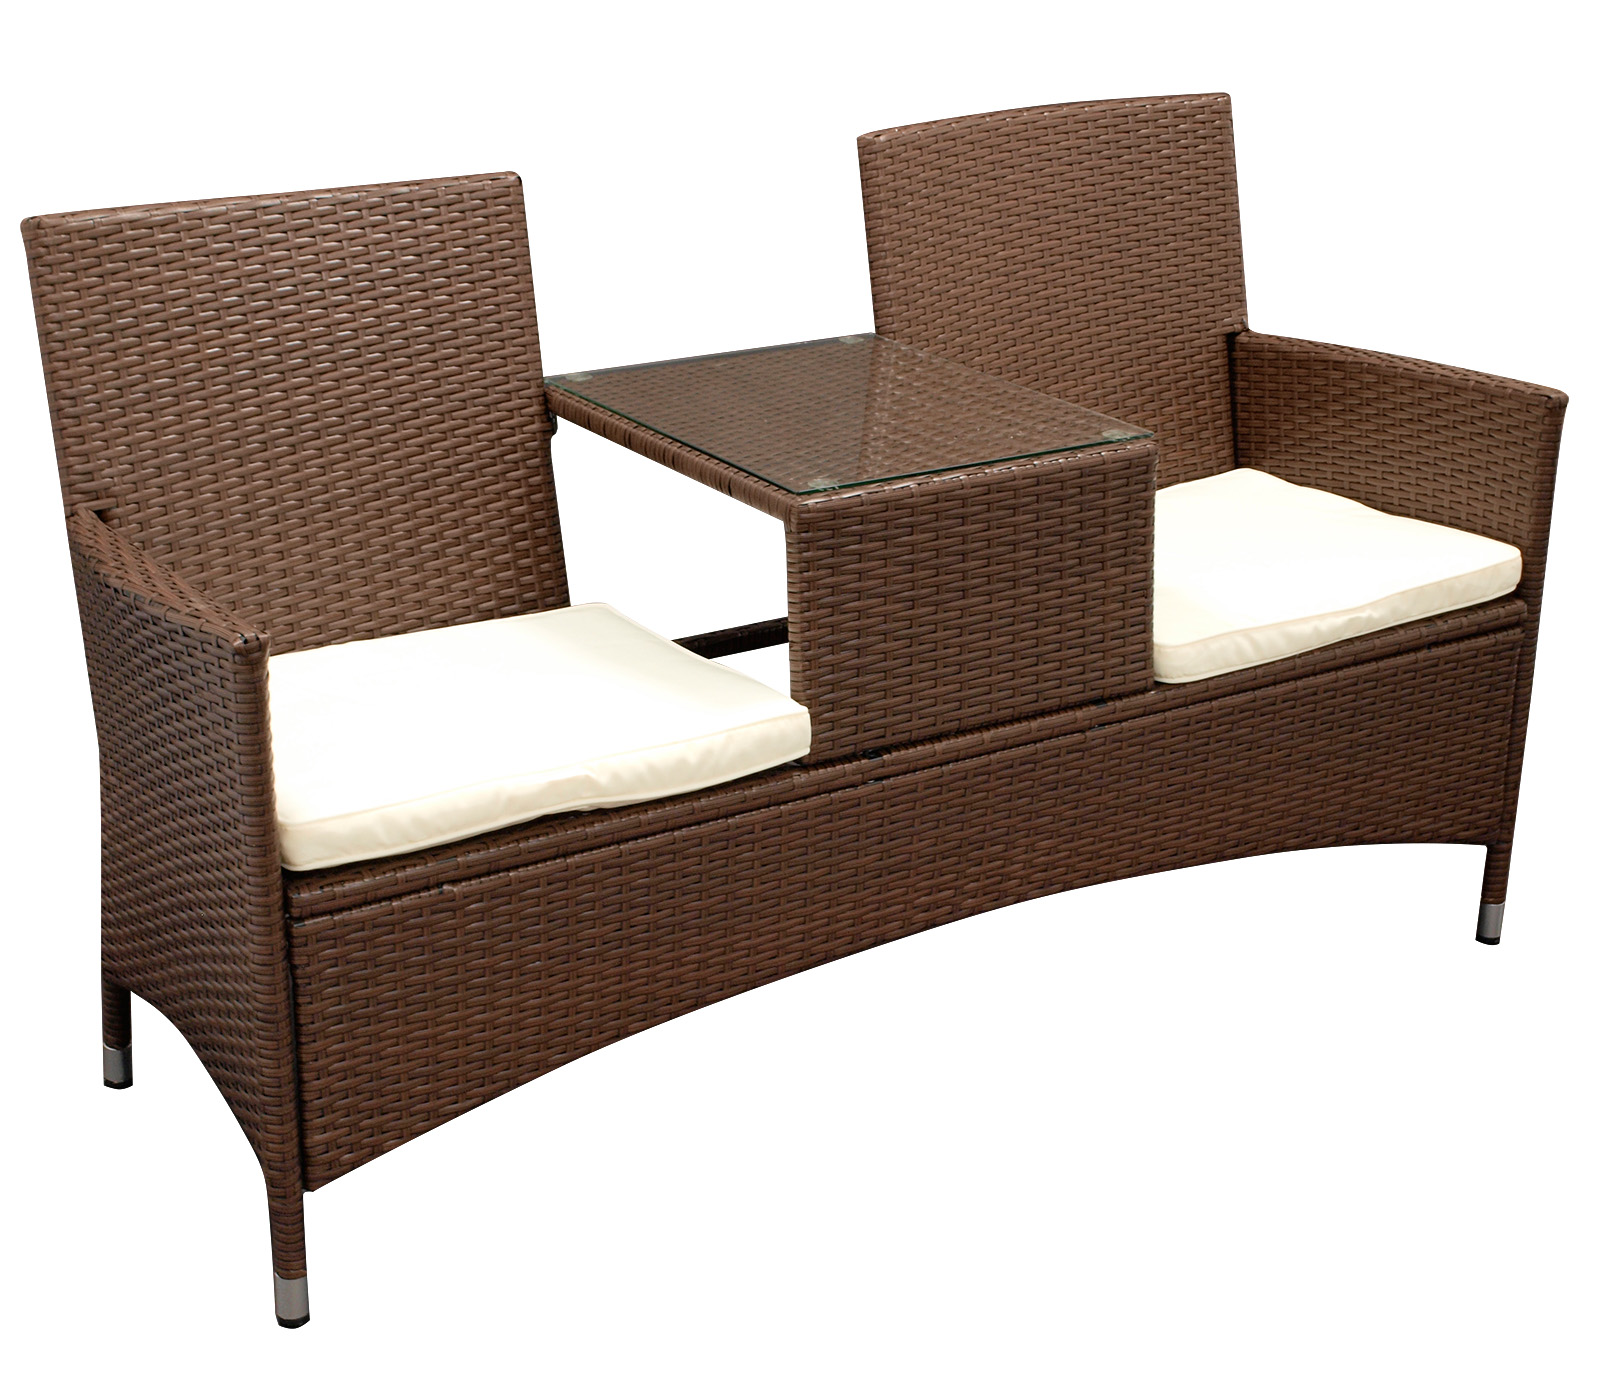 elegante tete tete bank san vincenzo 2 sitzer stahl polyrattan mocca bicolor ebay. Black Bedroom Furniture Sets. Home Design Ideas